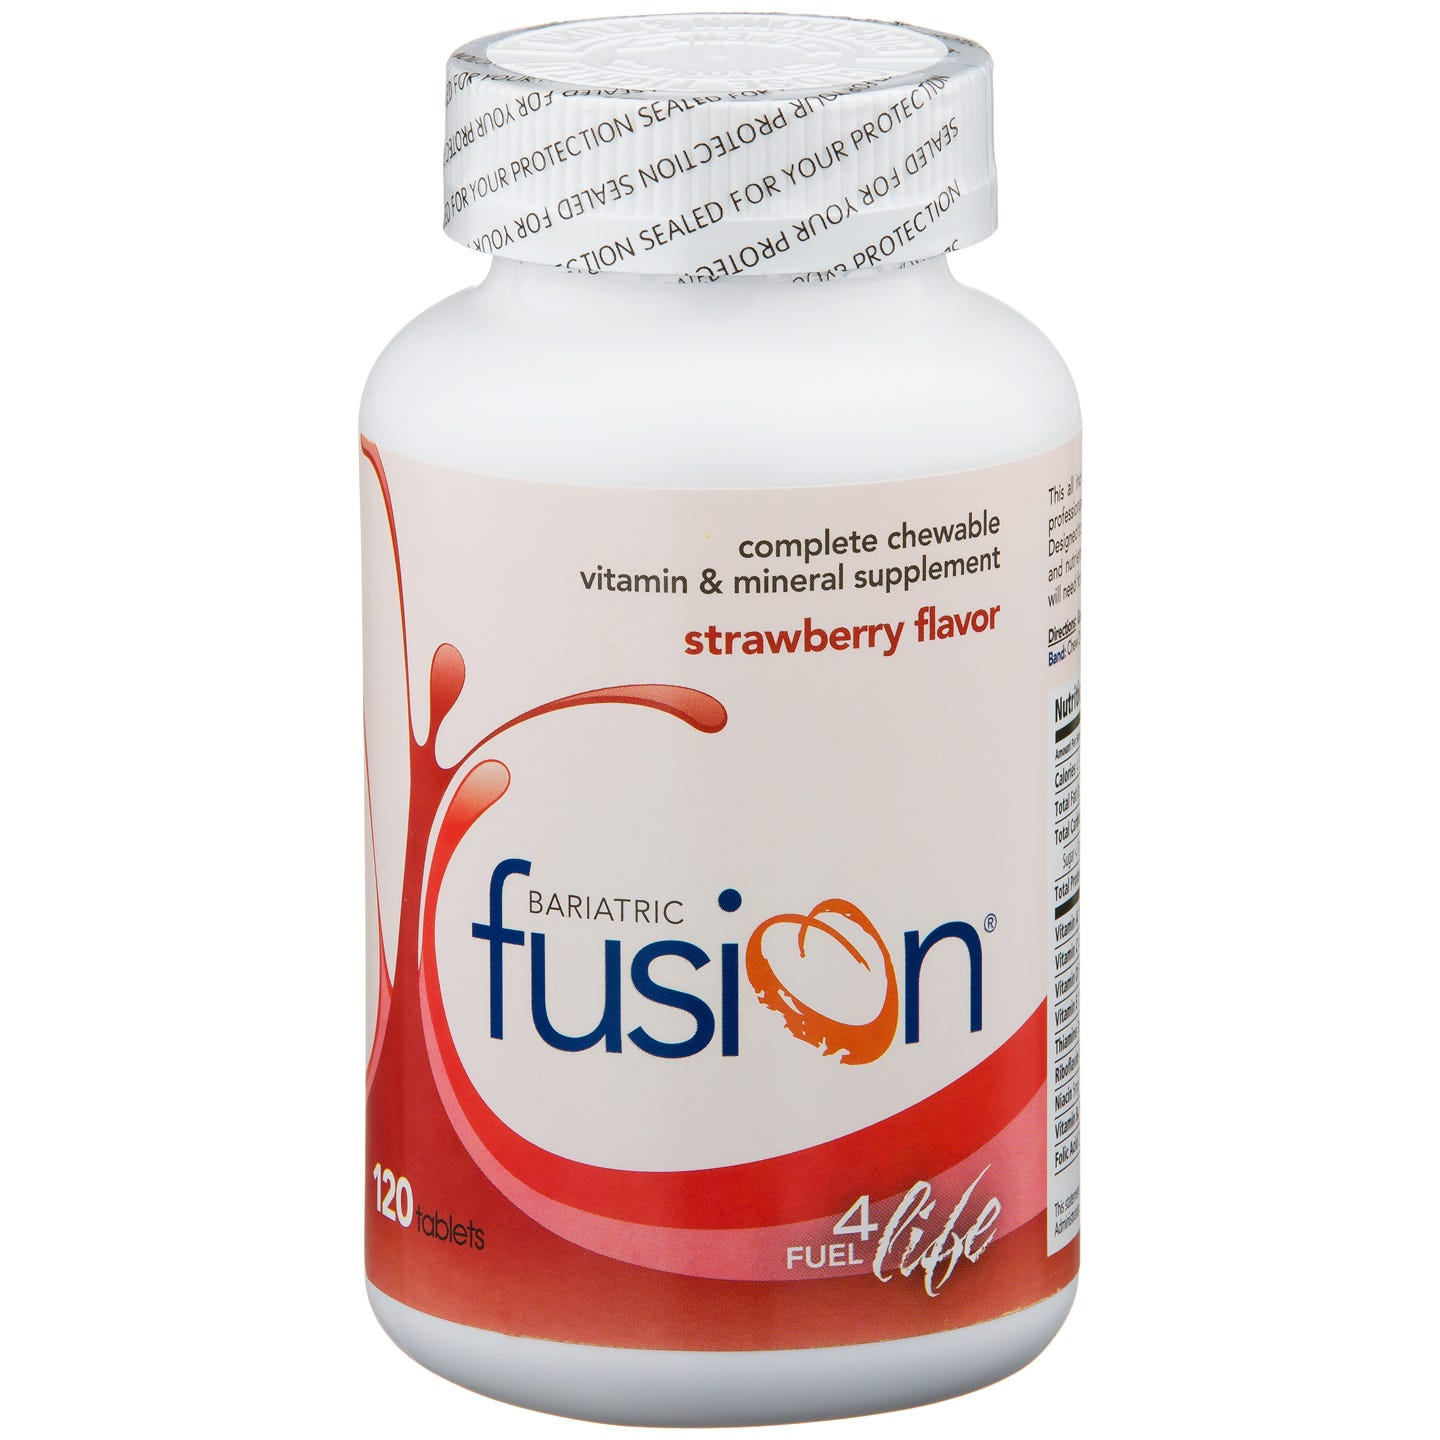 Bariatric Fusion Chewable Vitamin & Mineral Supplement - Strawberry